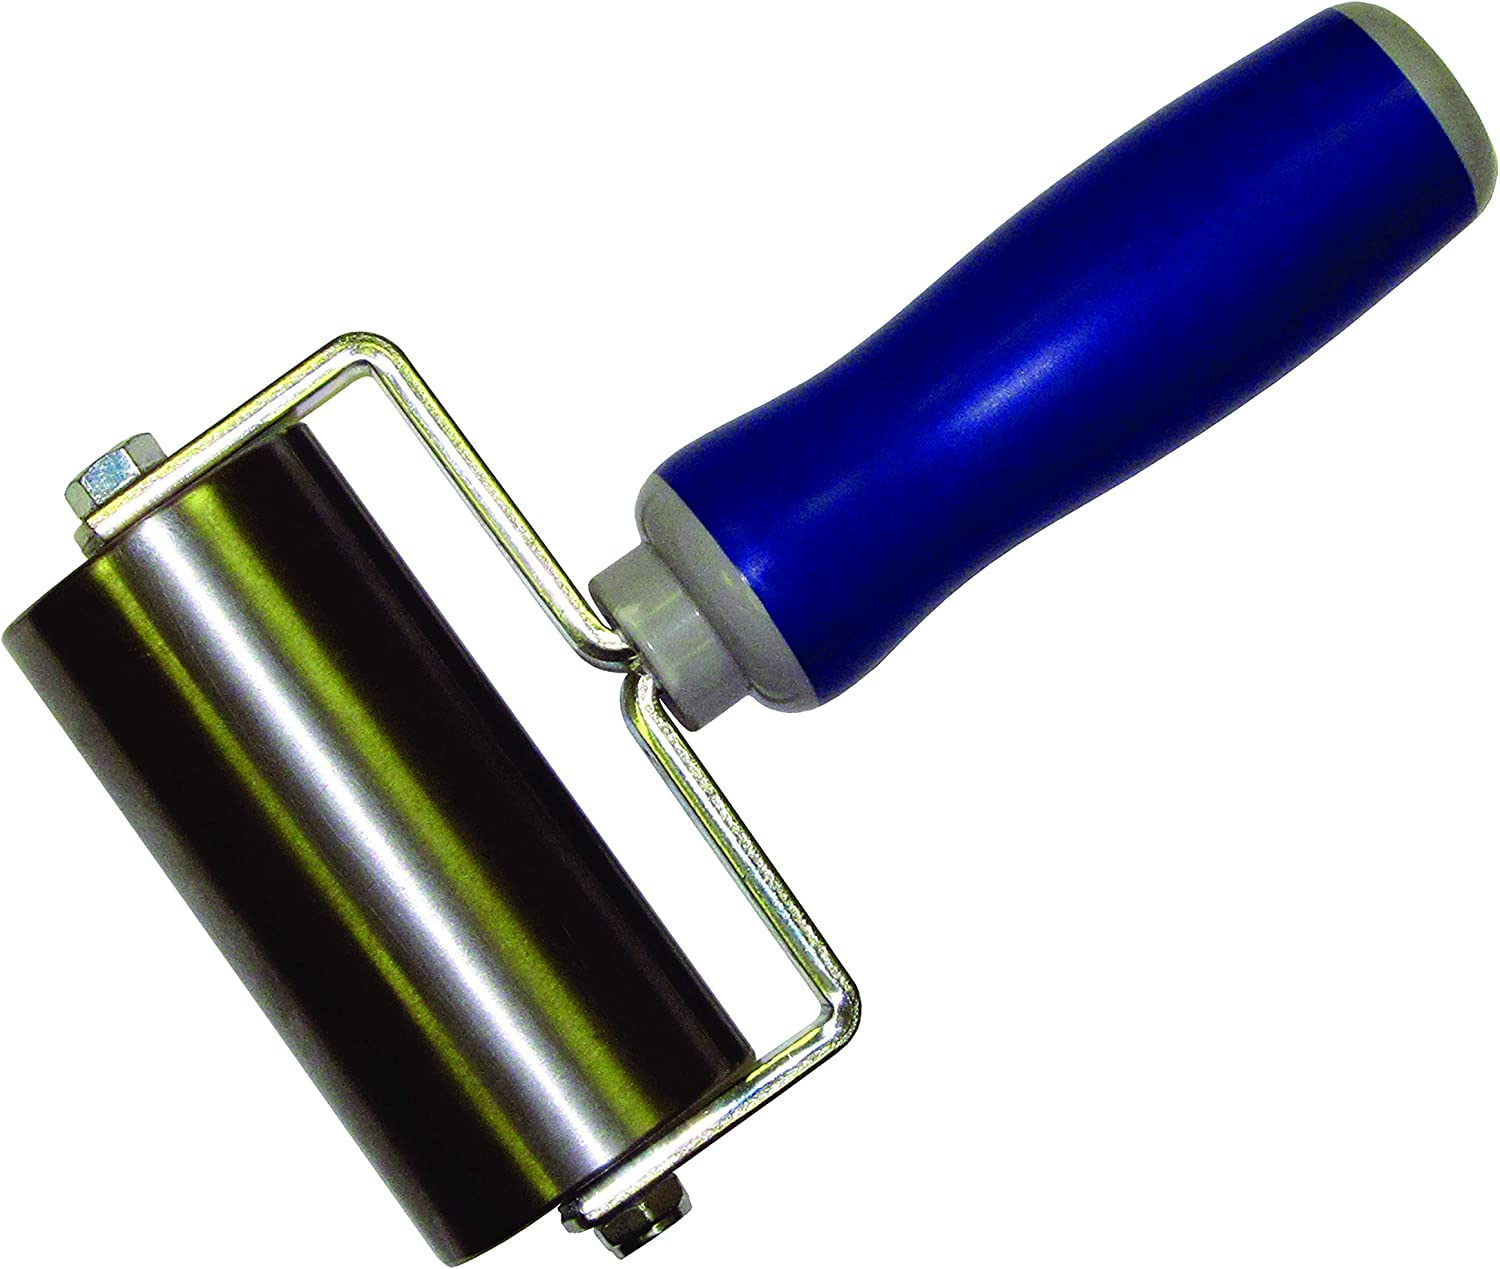 2 x 2 NEICOTOOLS Heavy Duty Outside Radius Steel Seam Roller for RV Roofing Tape and Vinyl Plank Flooring